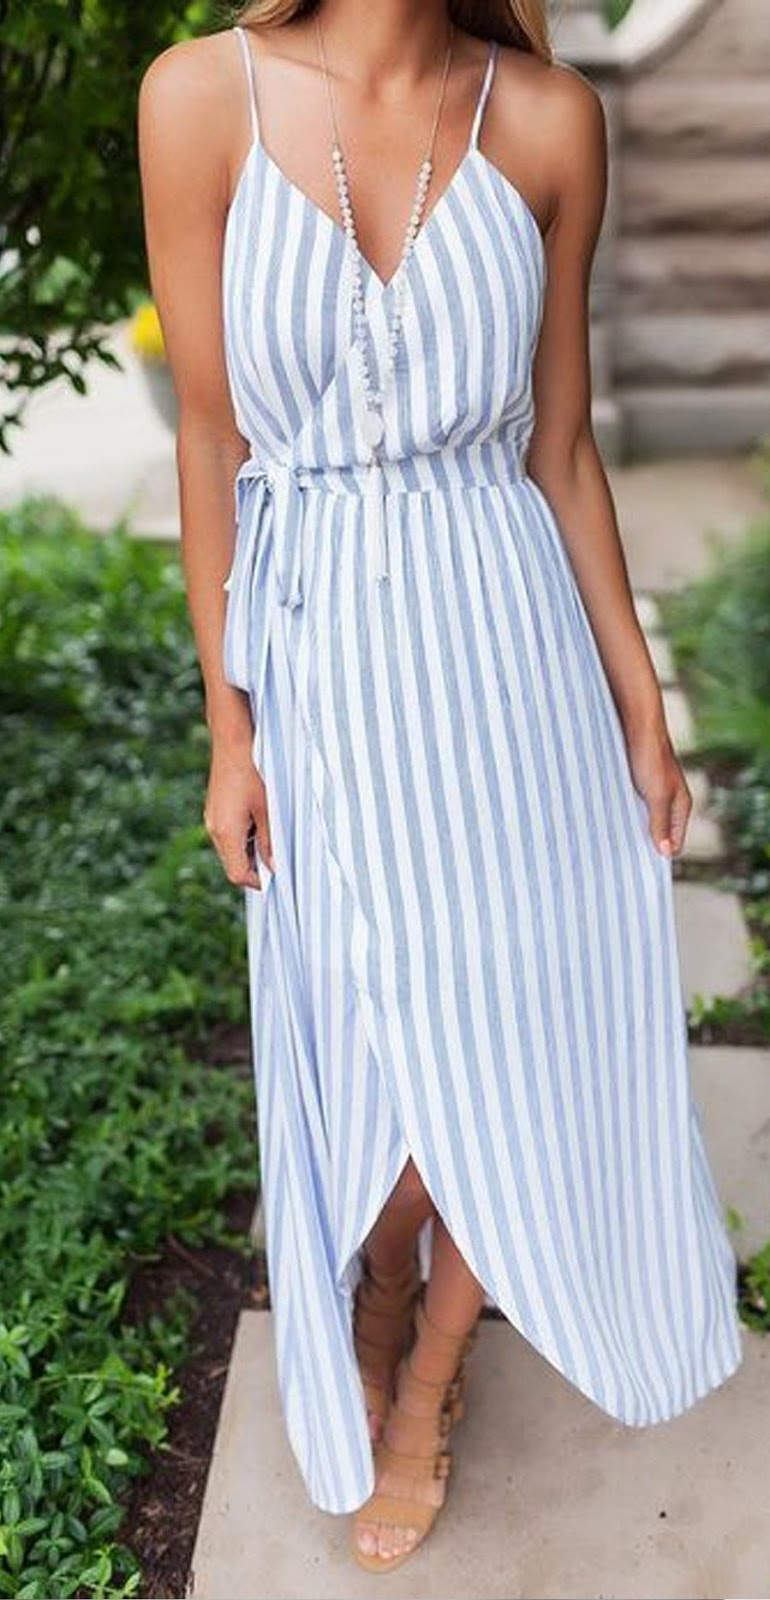 fashionable outfit_nude sandals + striped maxi dress